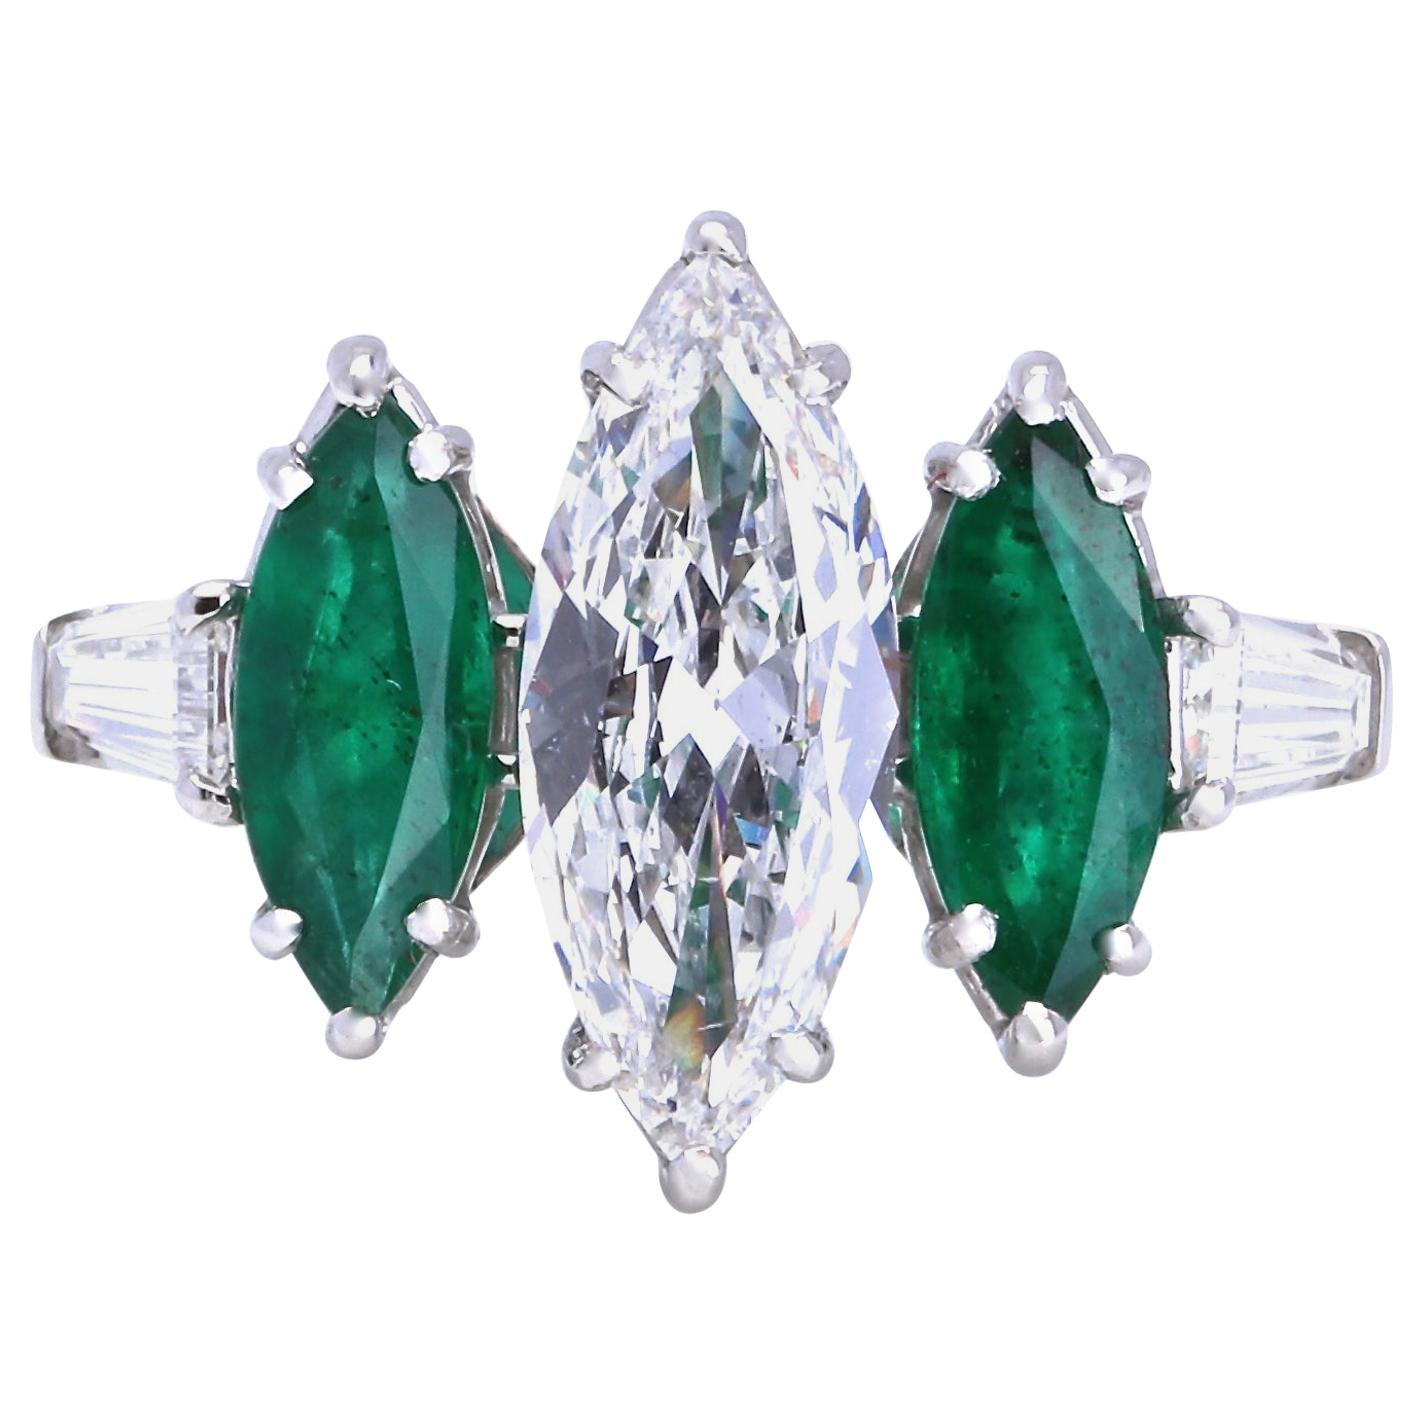 GIA Certified E Color 1.56 Carat Marquise Cut Diamond Emerald Platinum Ring